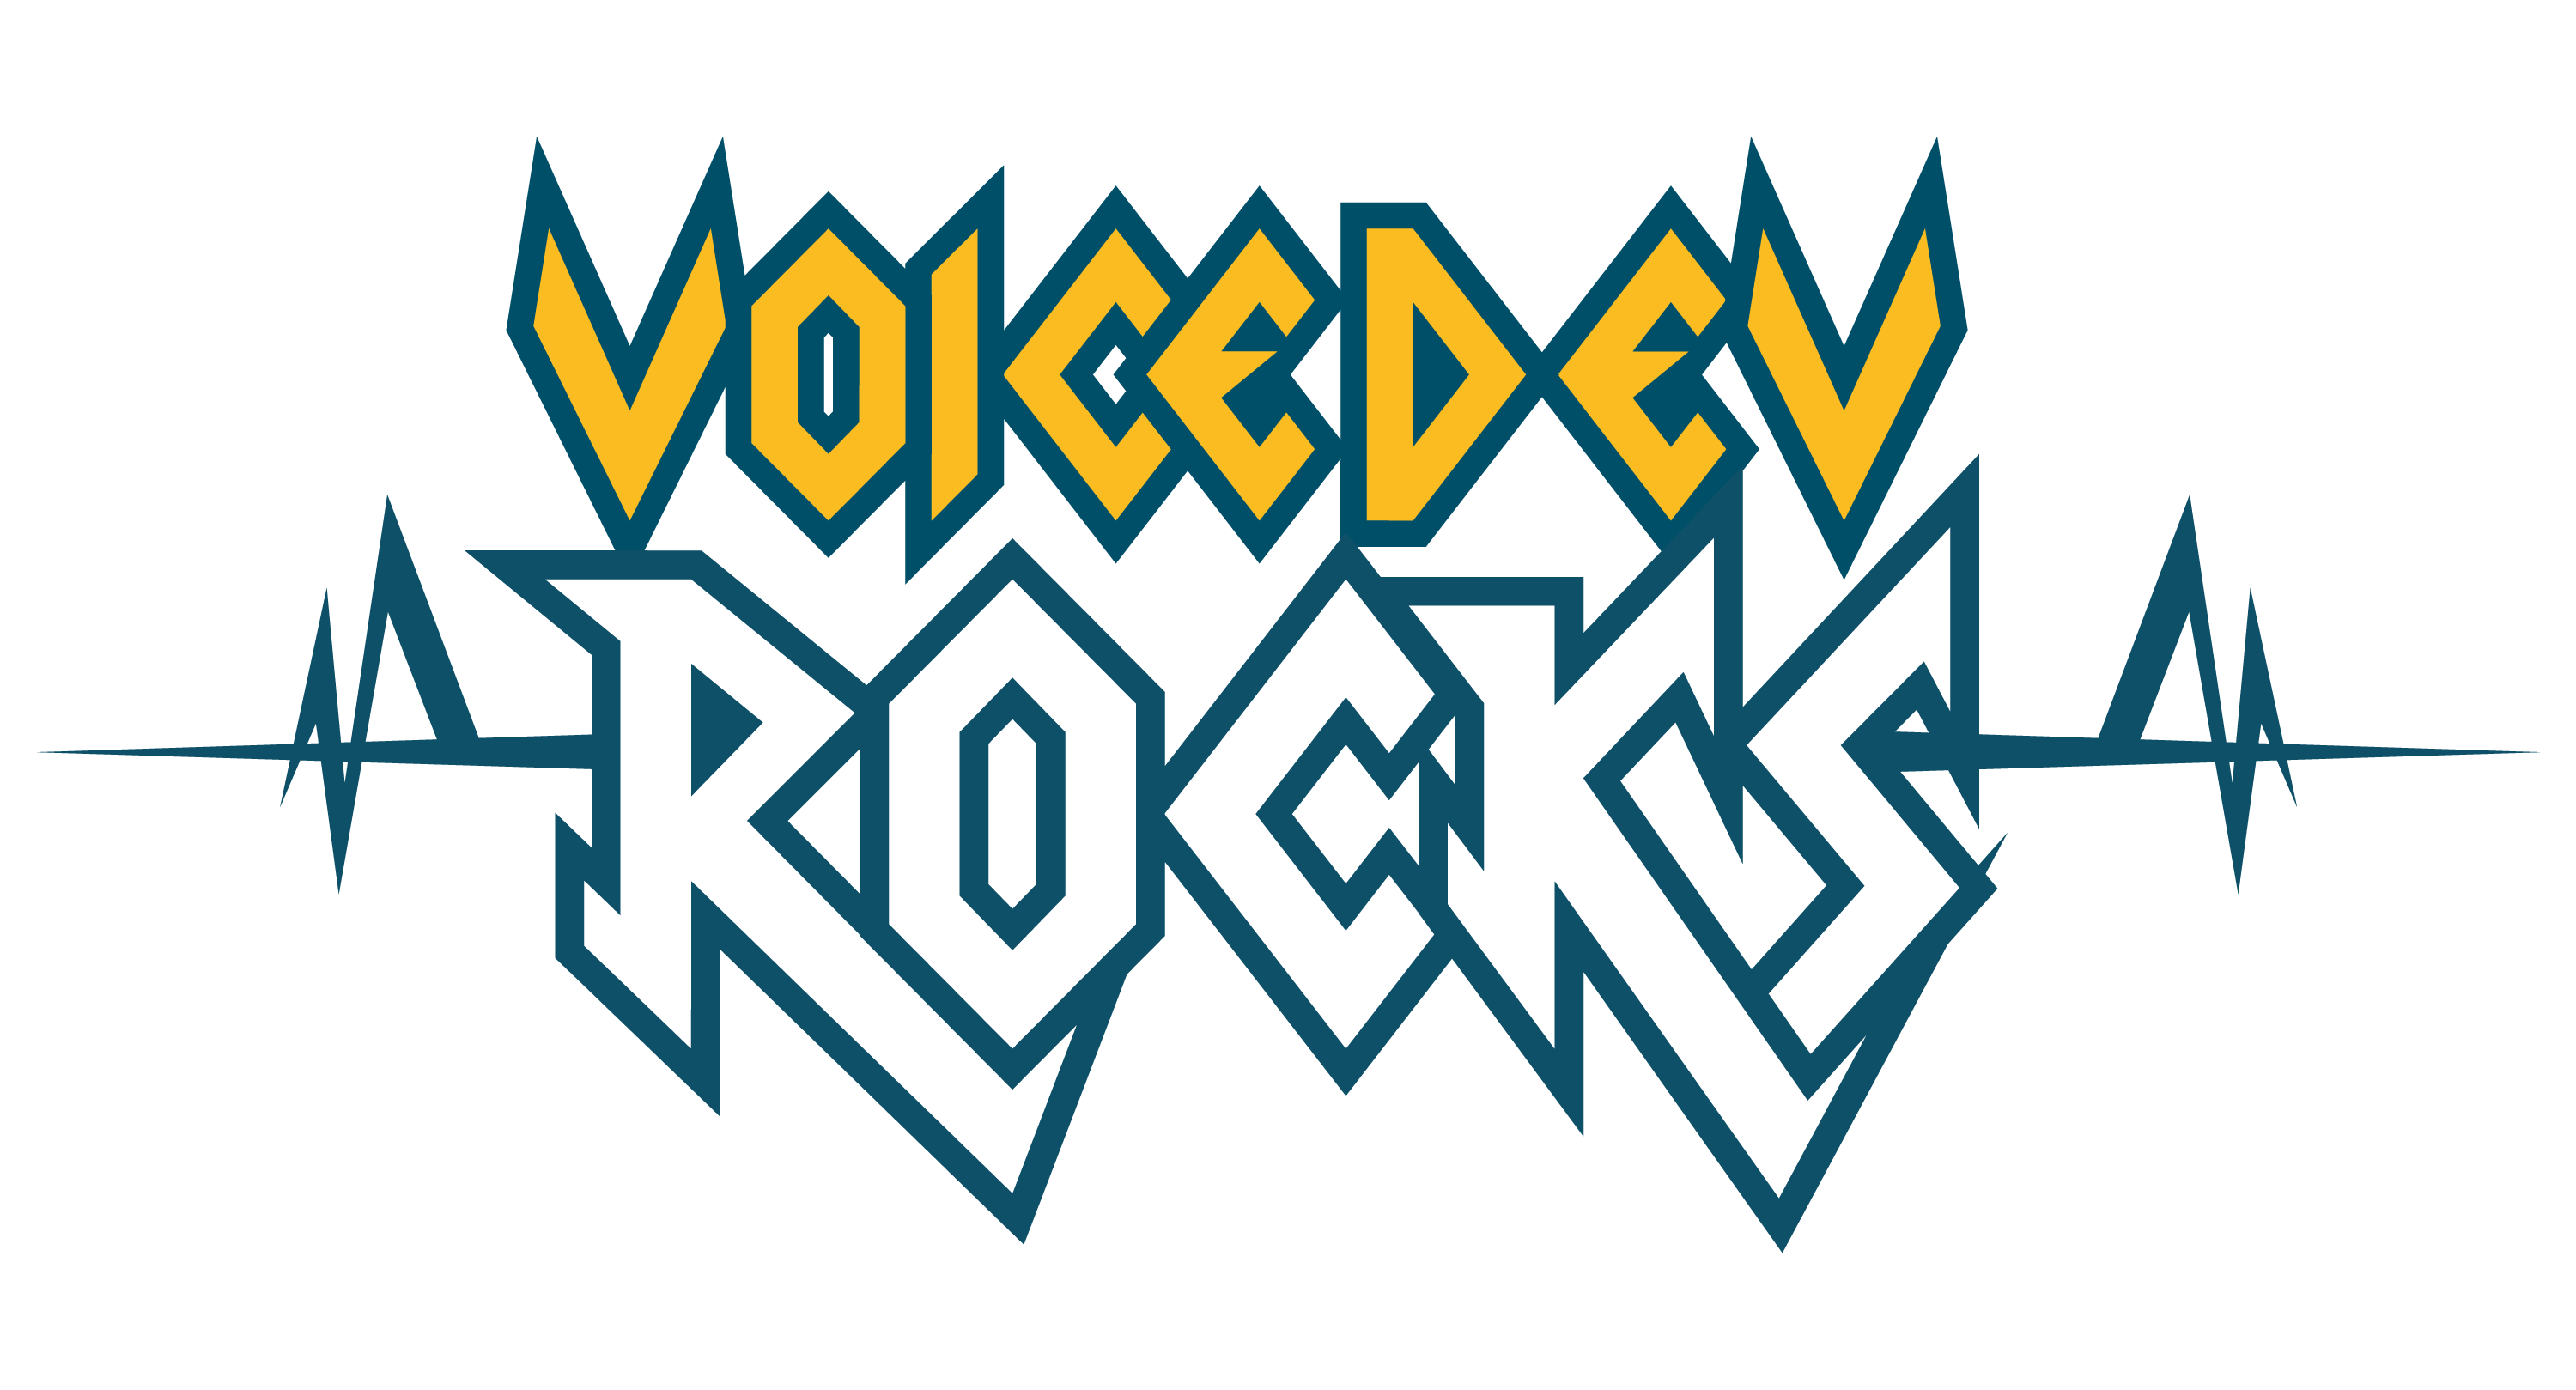 Voice Dev Rocks